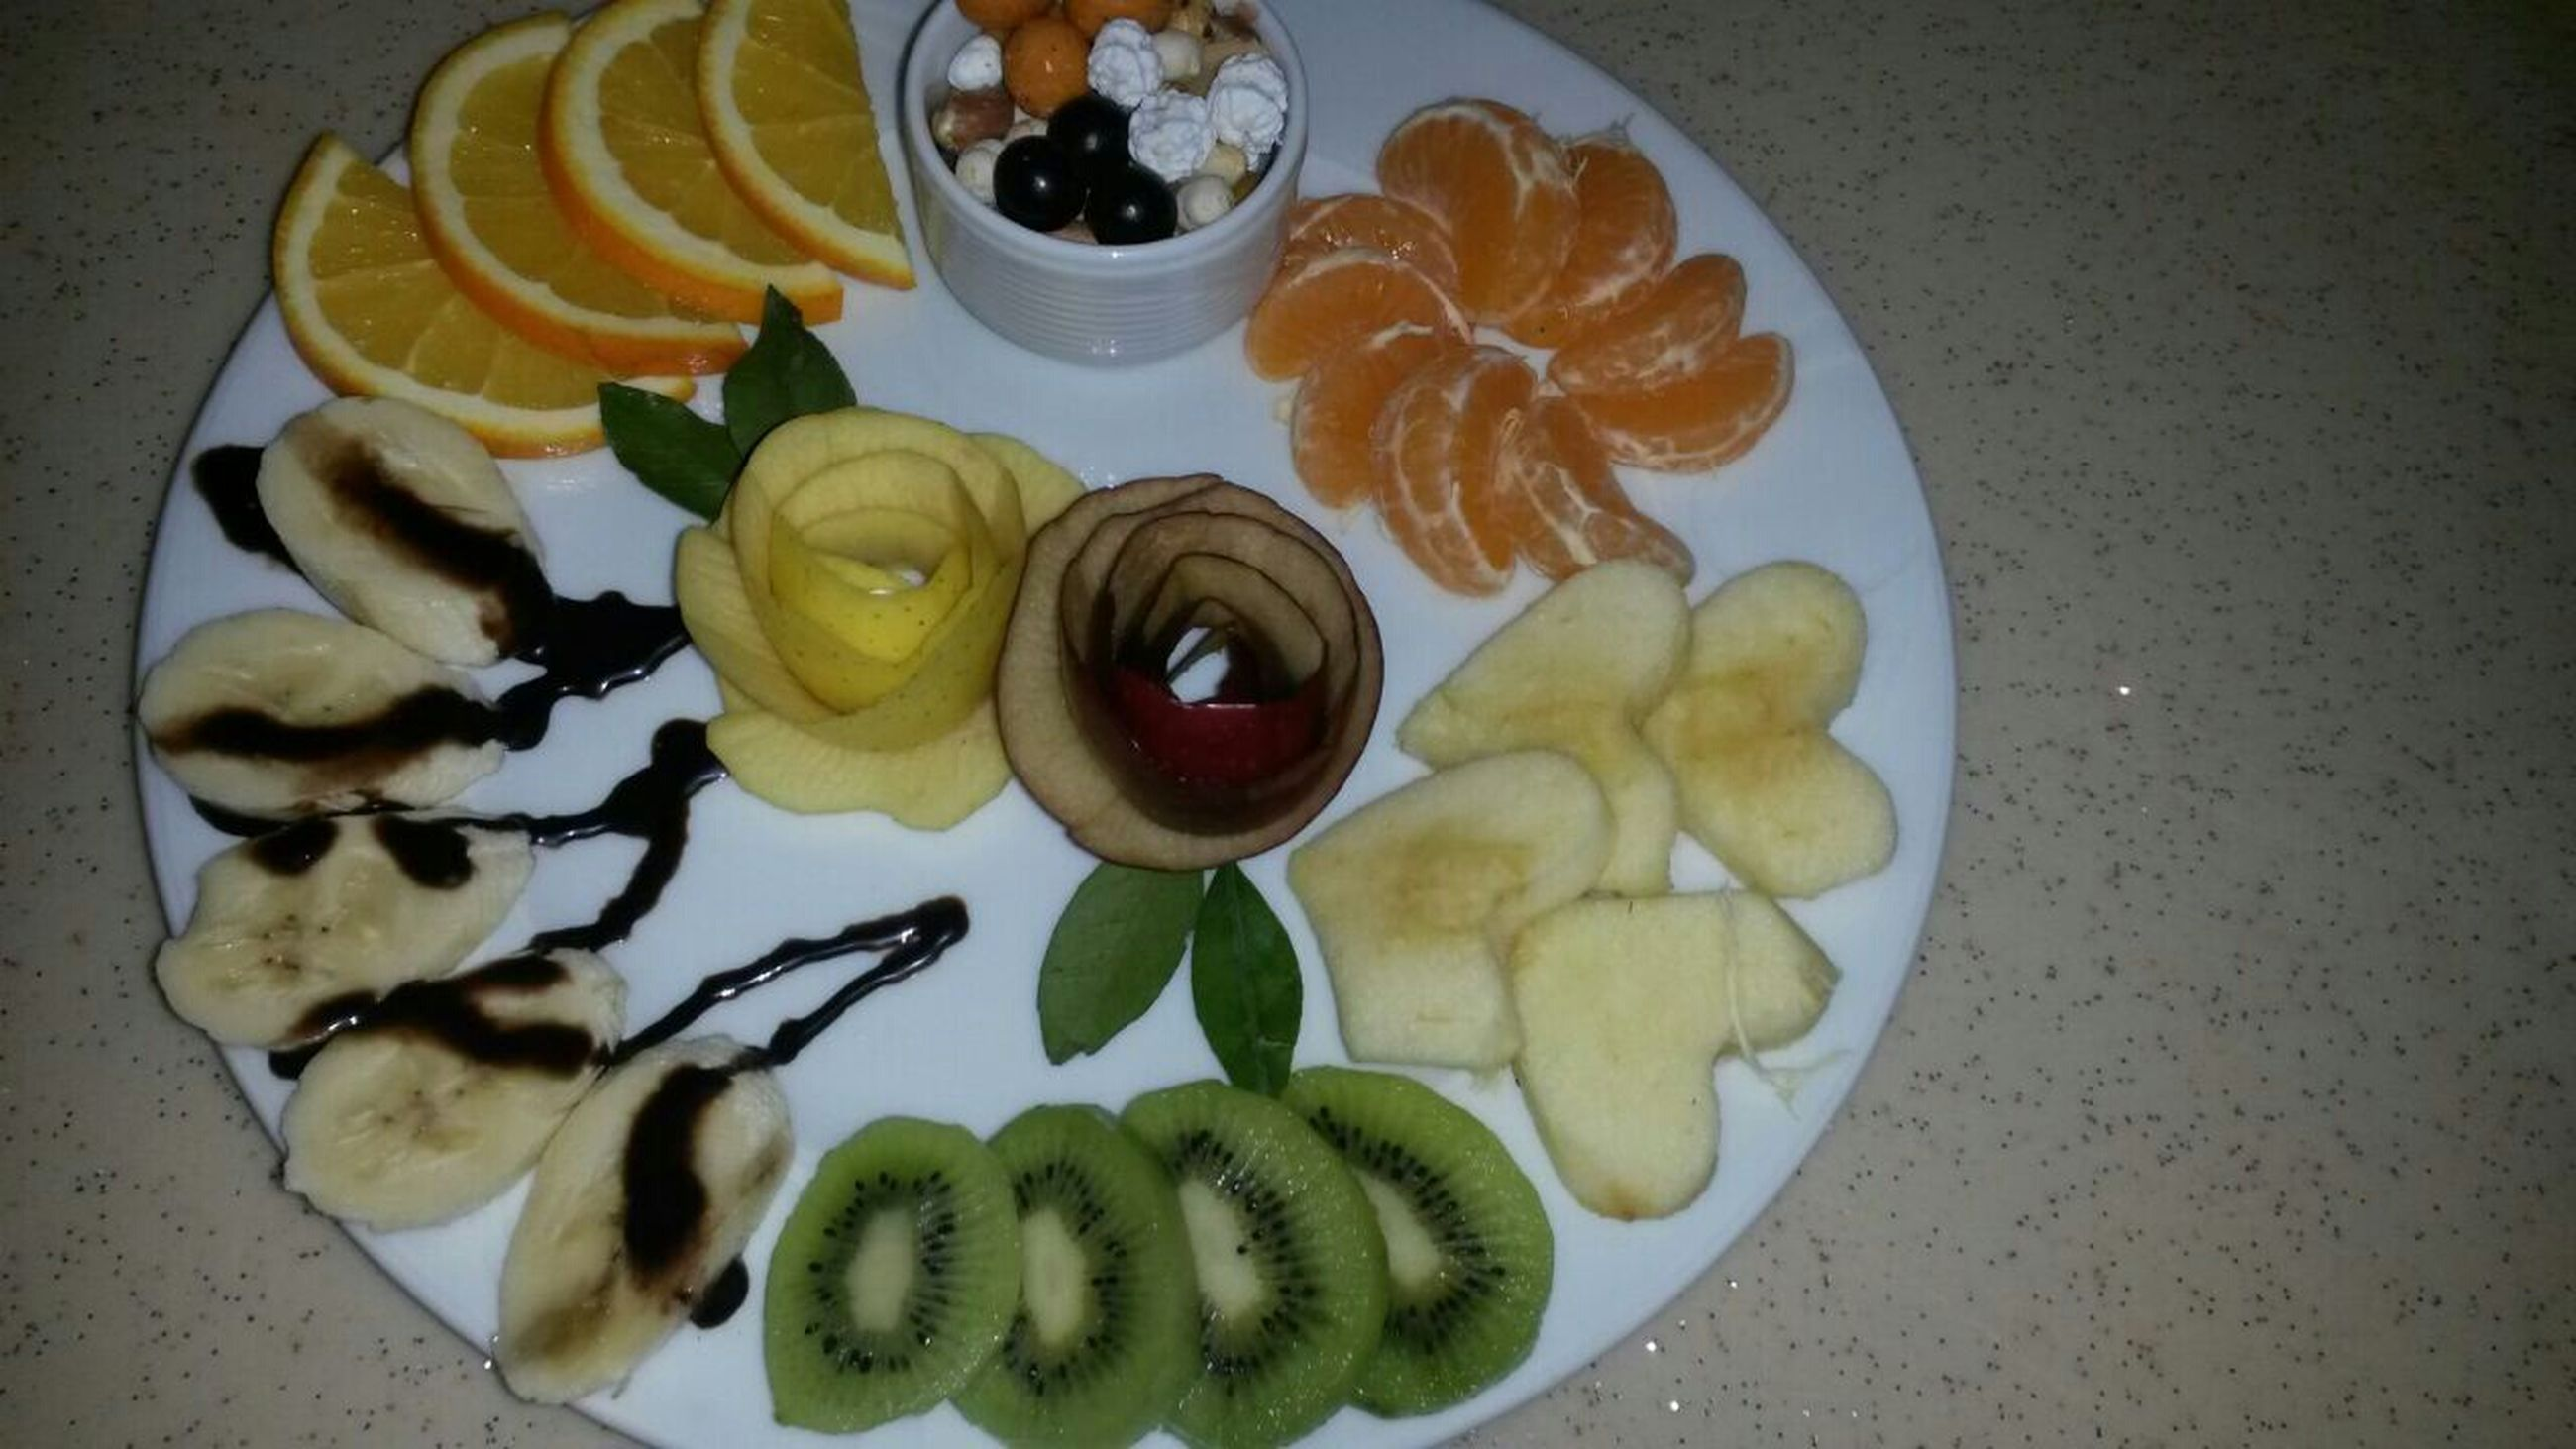 food and drink, indoors, food, still life, freshness, plate, ready-to-eat, table, sweet food, indulgence, high angle view, dessert, healthy eating, directly above, serving size, temptation, close-up, cake, variation